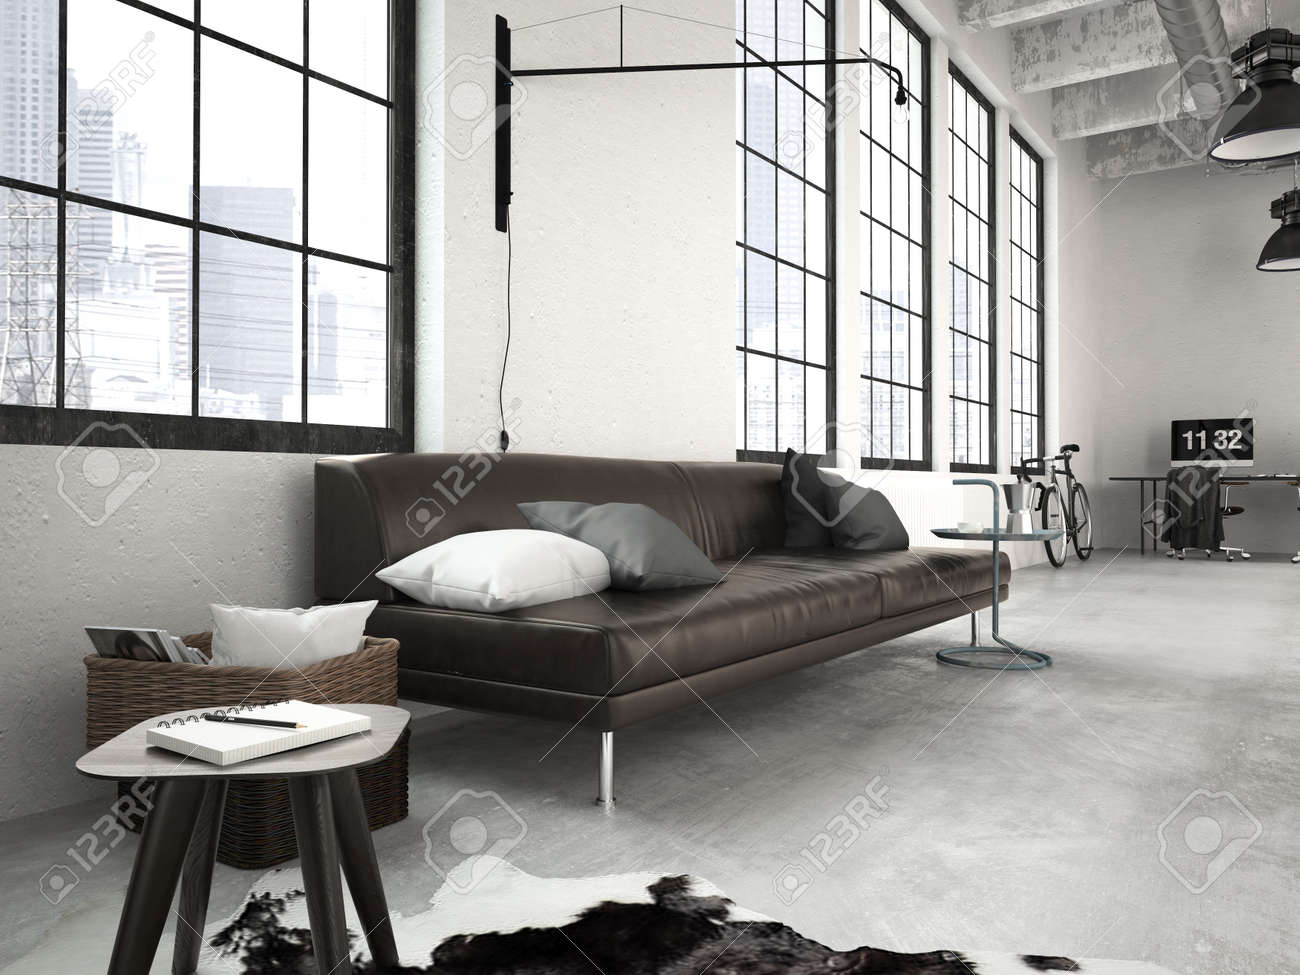 3d Rendering Of A Modern Industrial Style Loft Stock Photo, Picture ...